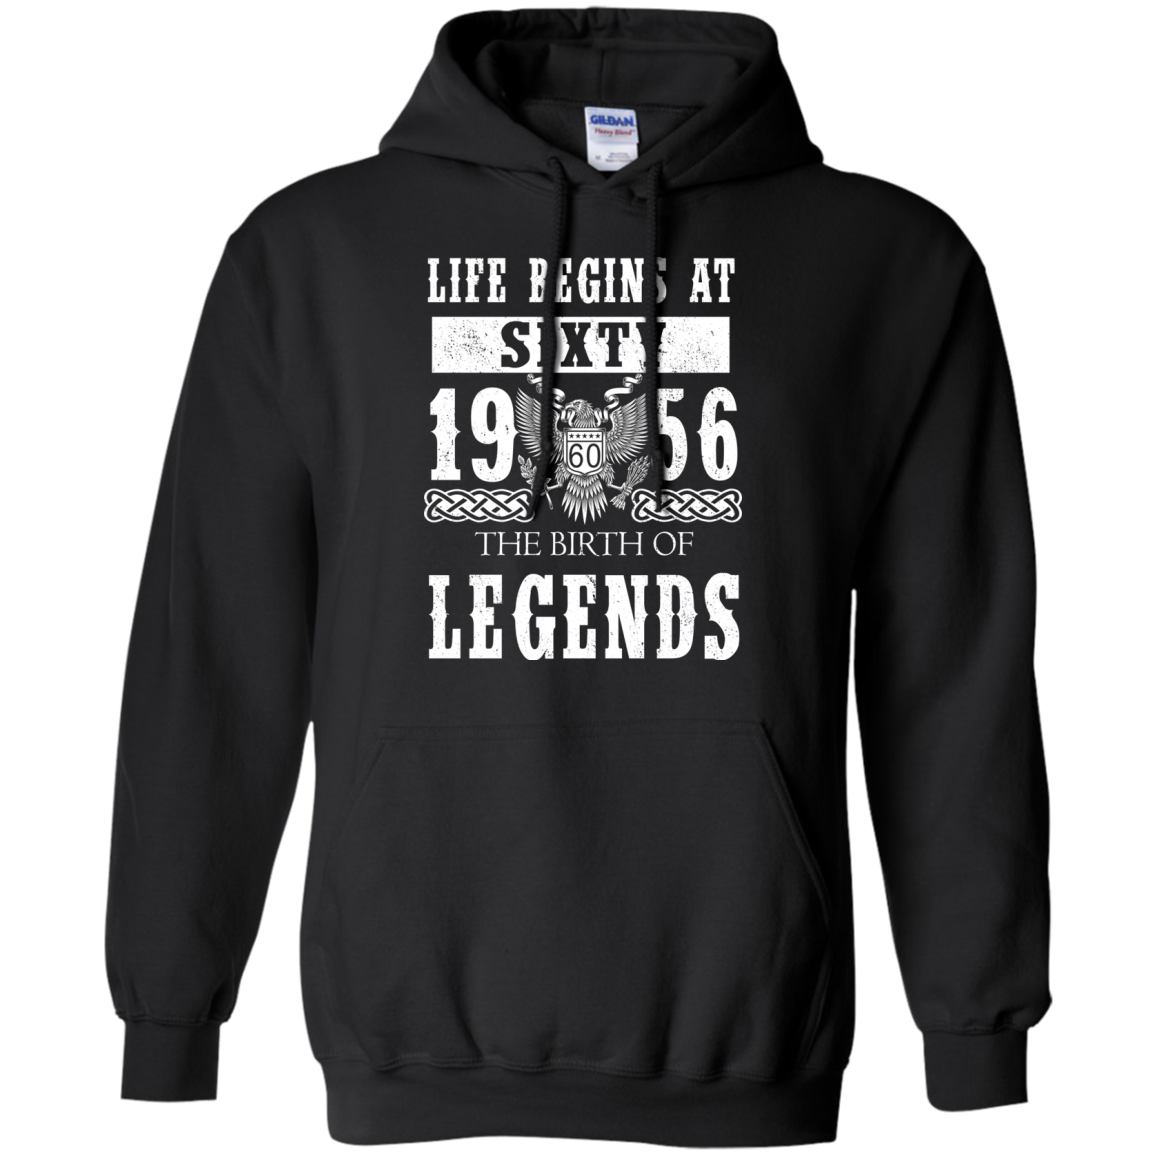 Life Begins At Sixty 1956 The Birth Of Legends T-Shirts - The Sun Cat